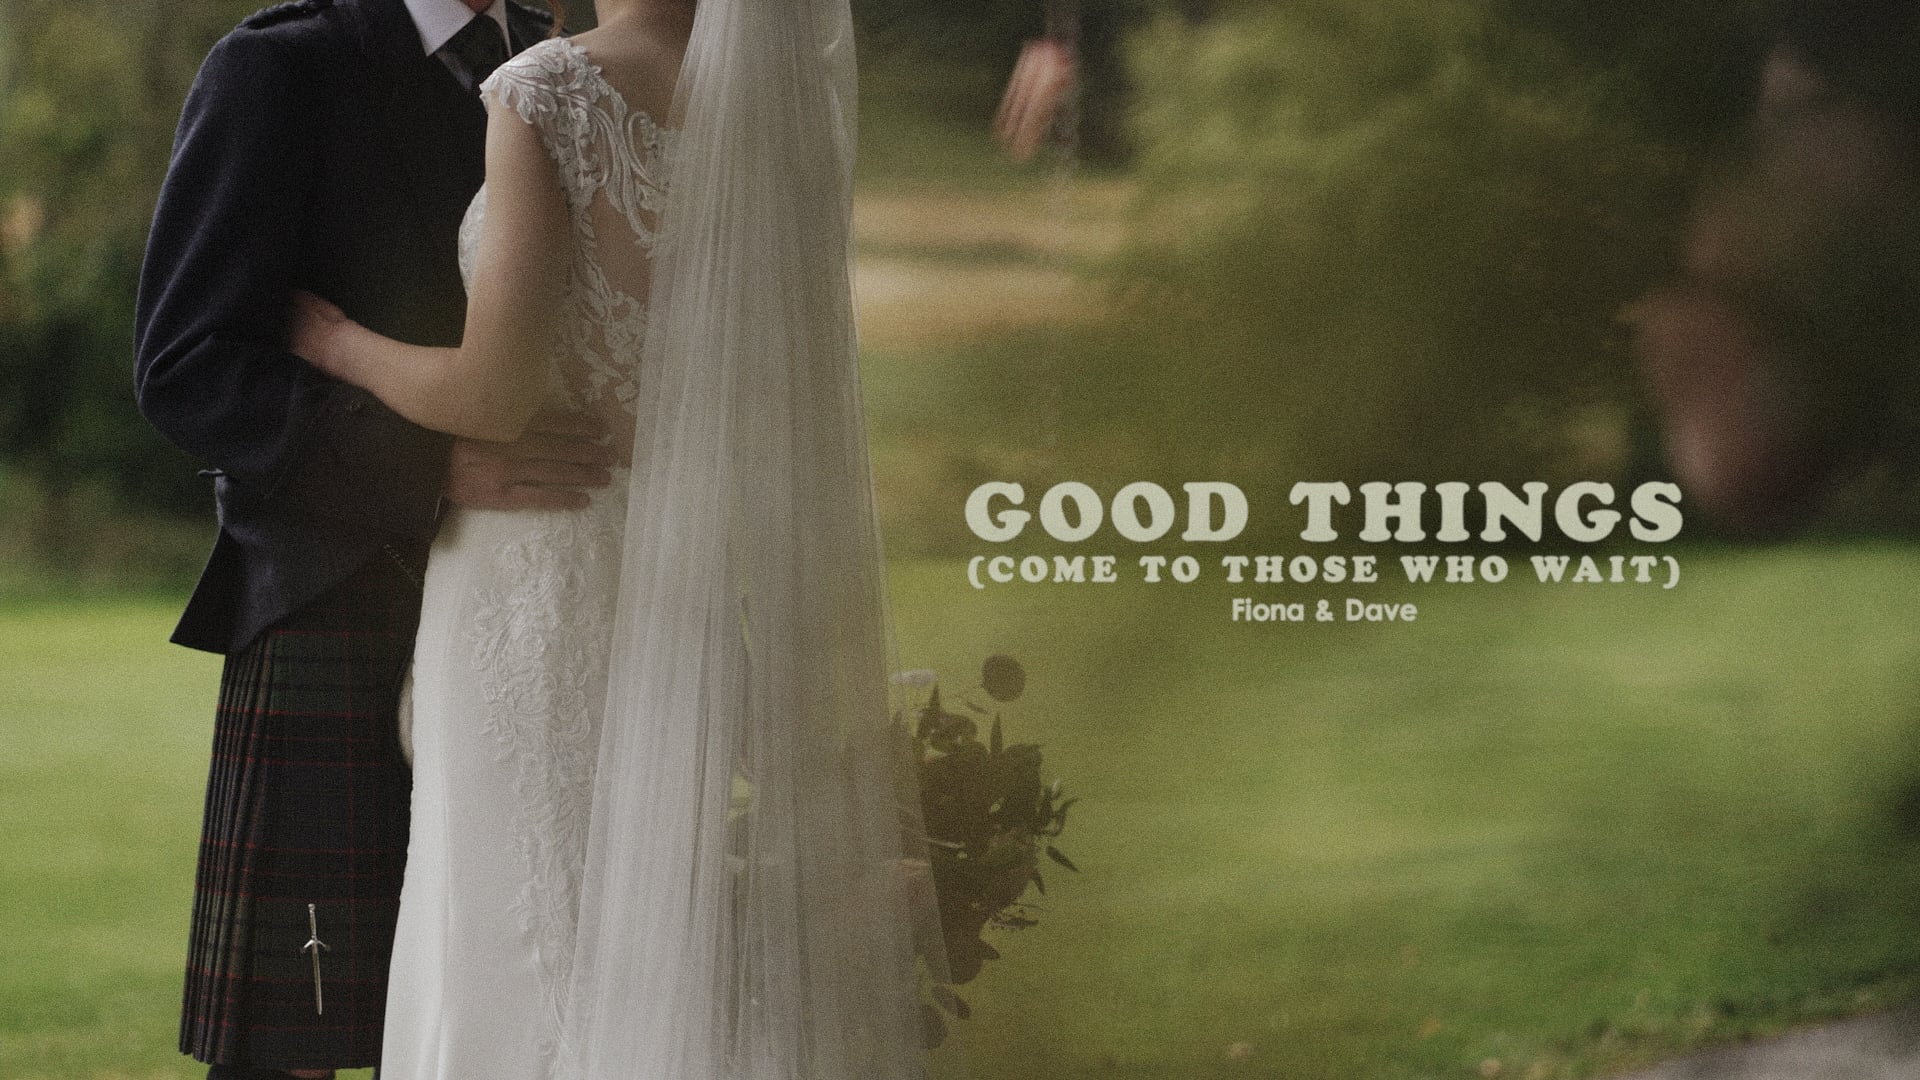 Good Things (Come to Those Who Wait) by Fiona and Dave